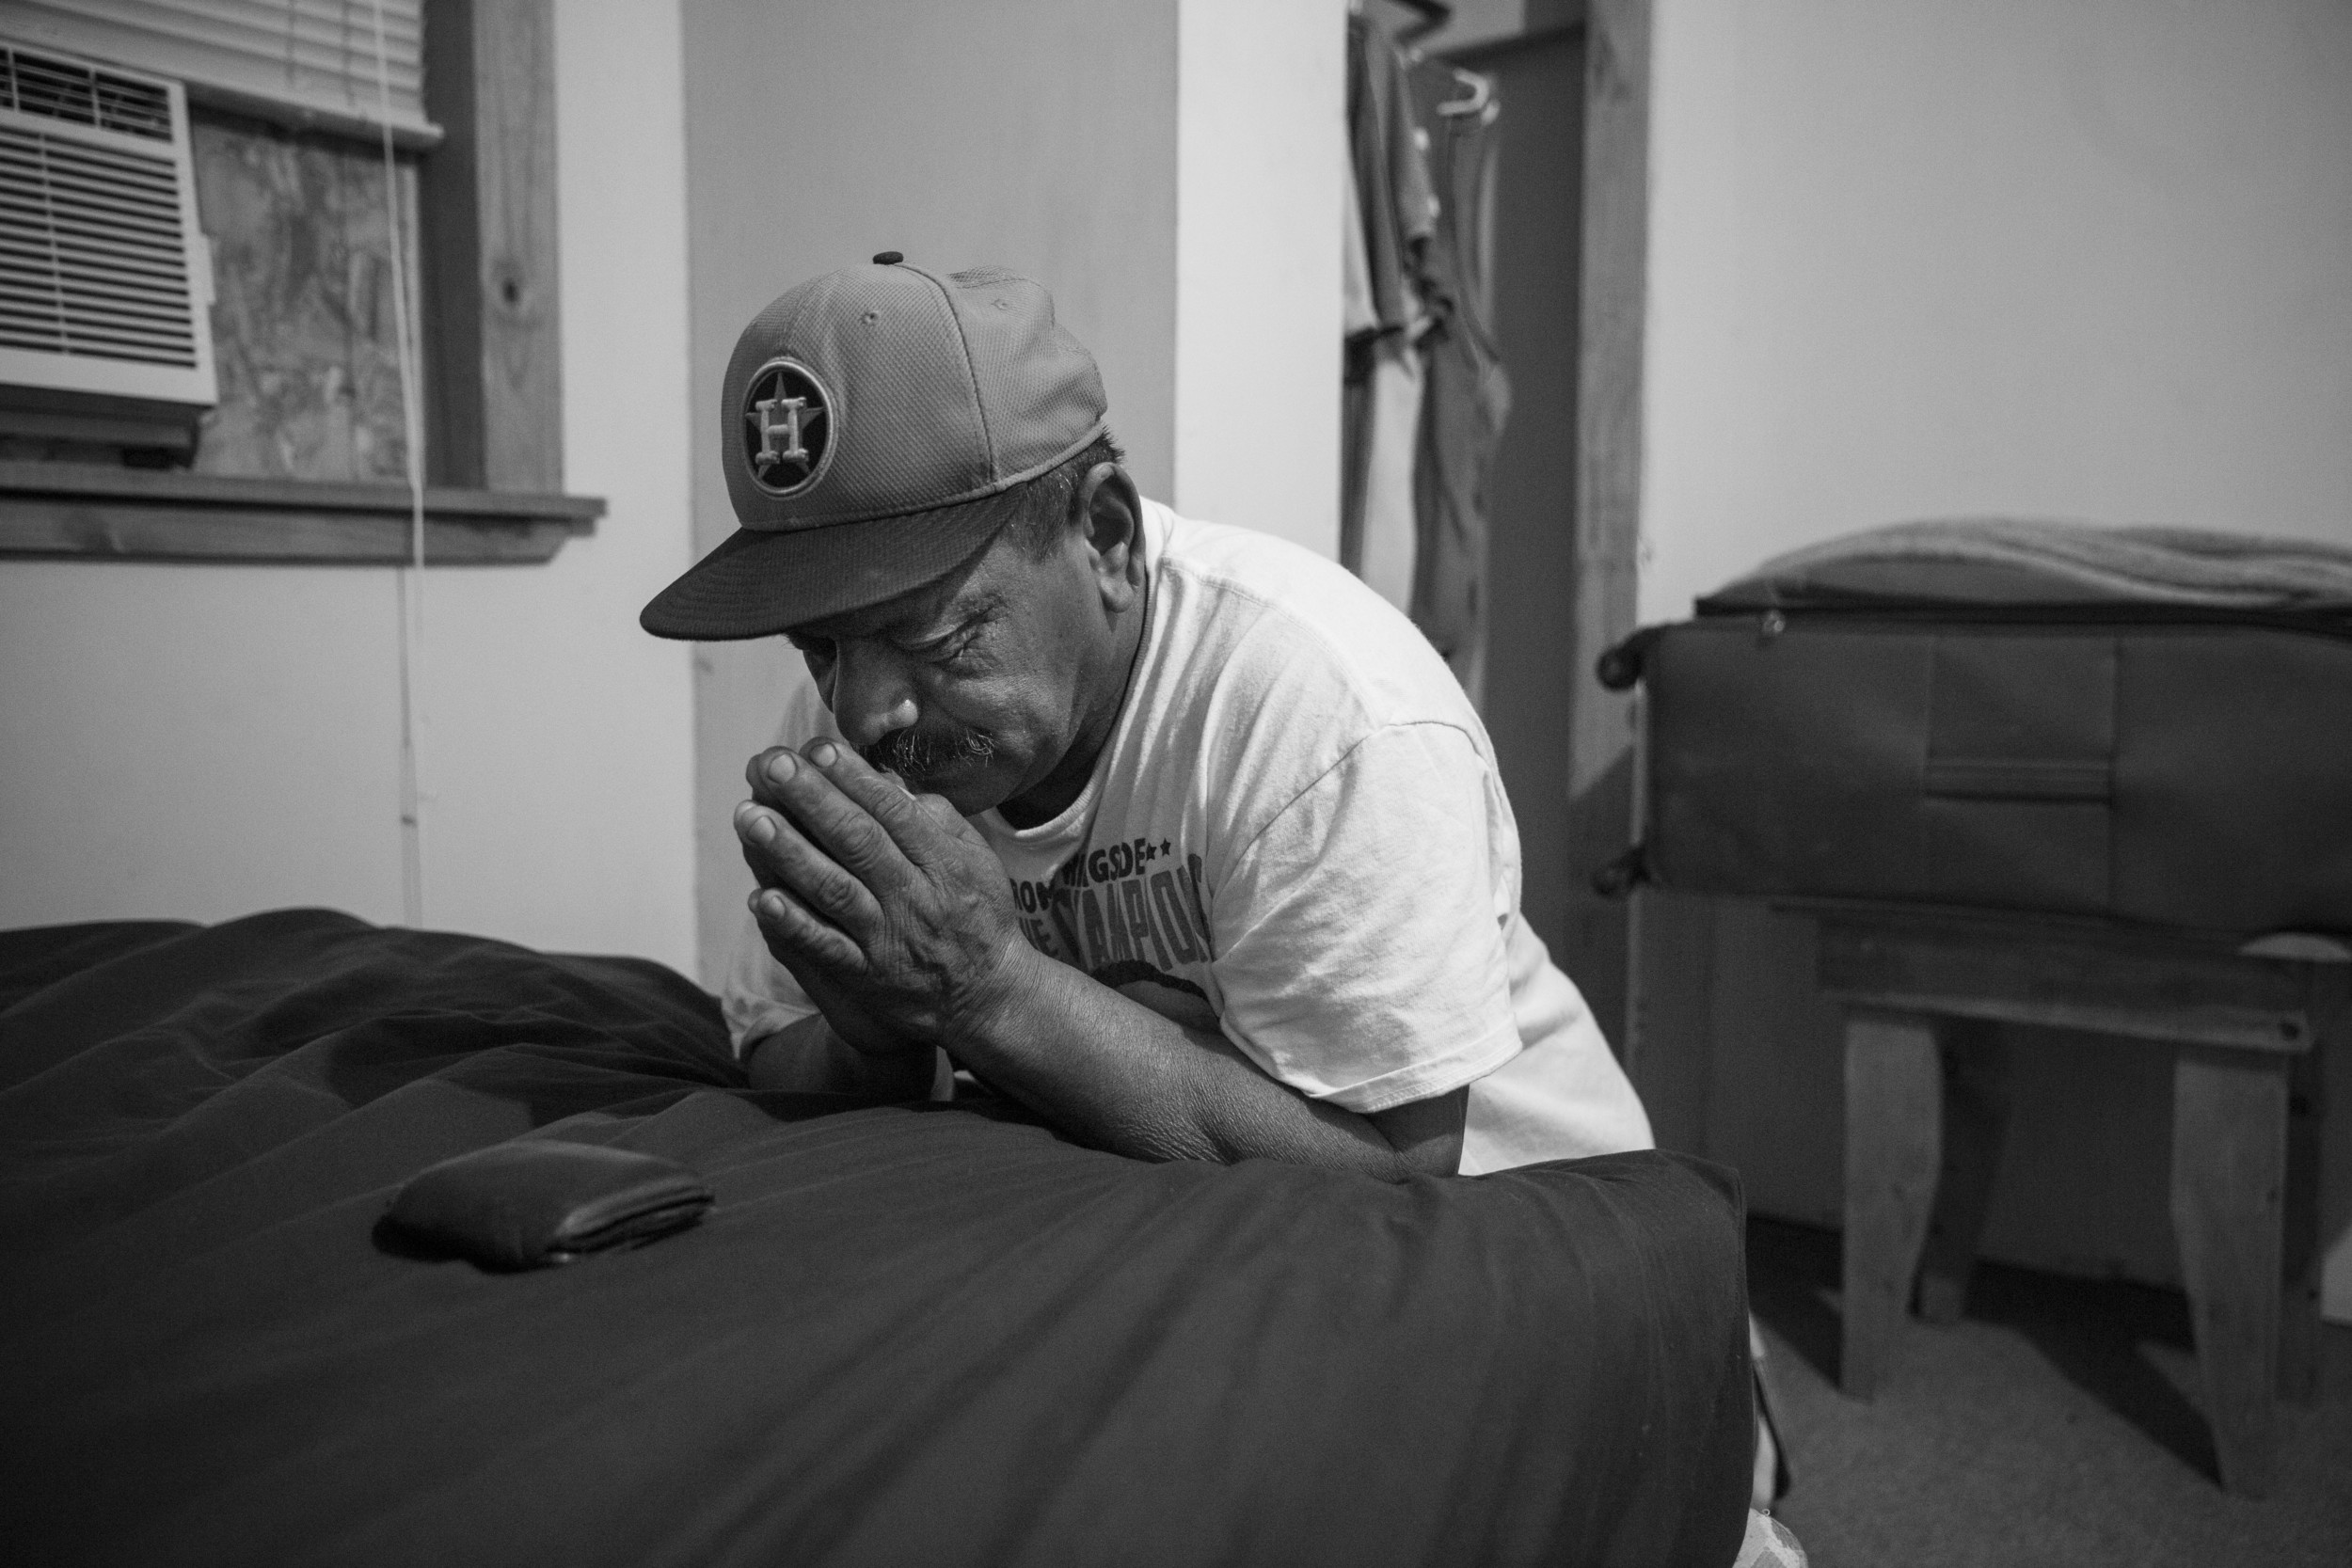 "Before dawn Tino Gaona prays in his bedroom on the morning of his youngest daughter's 24th birthday, which he is missing, in Cotulla, Texas on August 6, 2015.  ""I miss a lot of birthdays and holidays, but that is how it goes,"" he said. He prays every morning before going to work in the oil field.  After 20 years in the oil field, he considers it very dangerous work. Of God, he said, ""He's the reason I am still here, so I pray for everybody on my crew."""